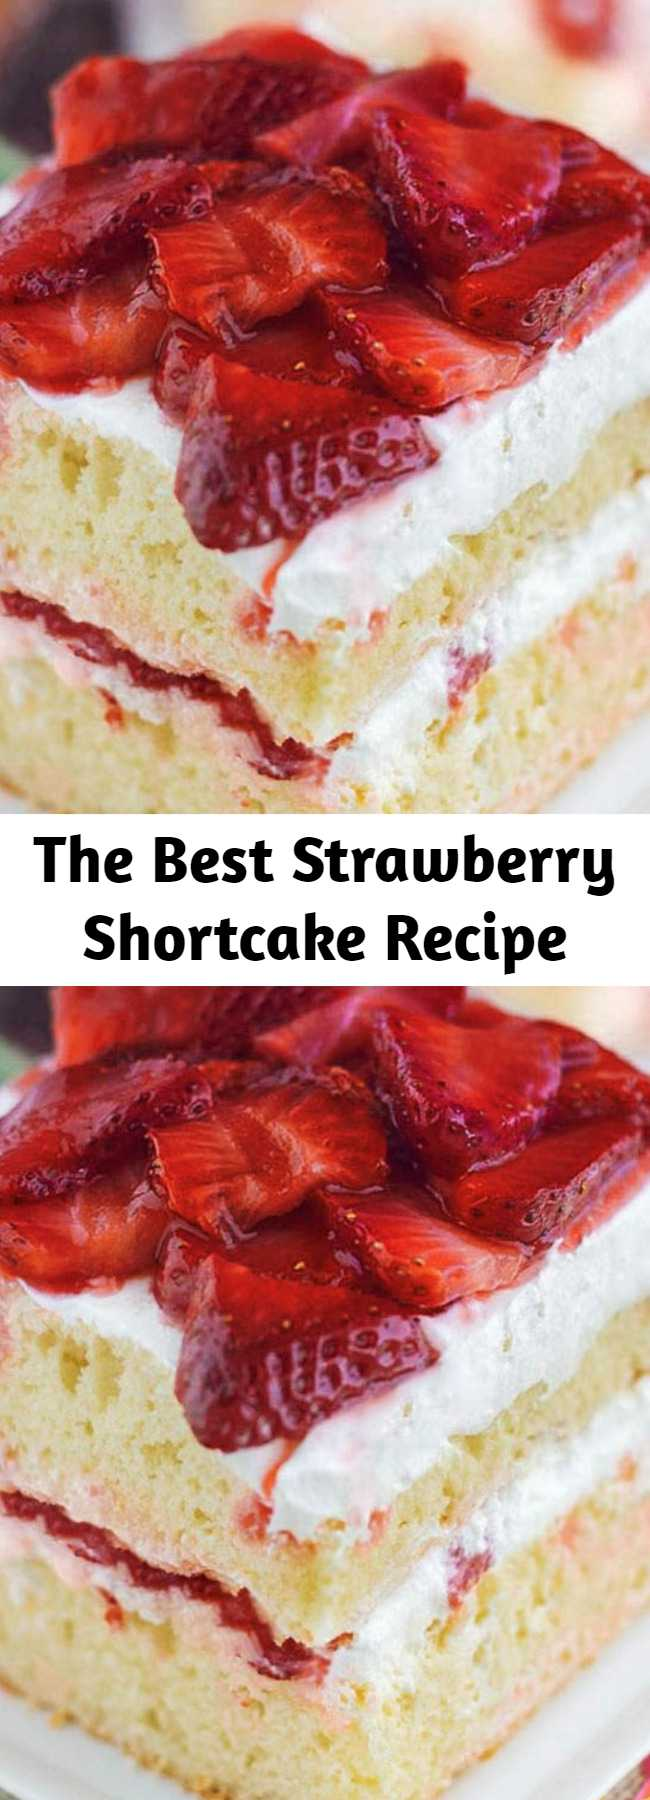 The Best Strawberry Shortcake Recipe - The Best STRAWBERRY SHORTCAKE CAKE recipe featuring a moist white layer cake filled with strawberries and whipped cream topping. The quintessential summer dessert cake with freshly sliced strawberries and cream.